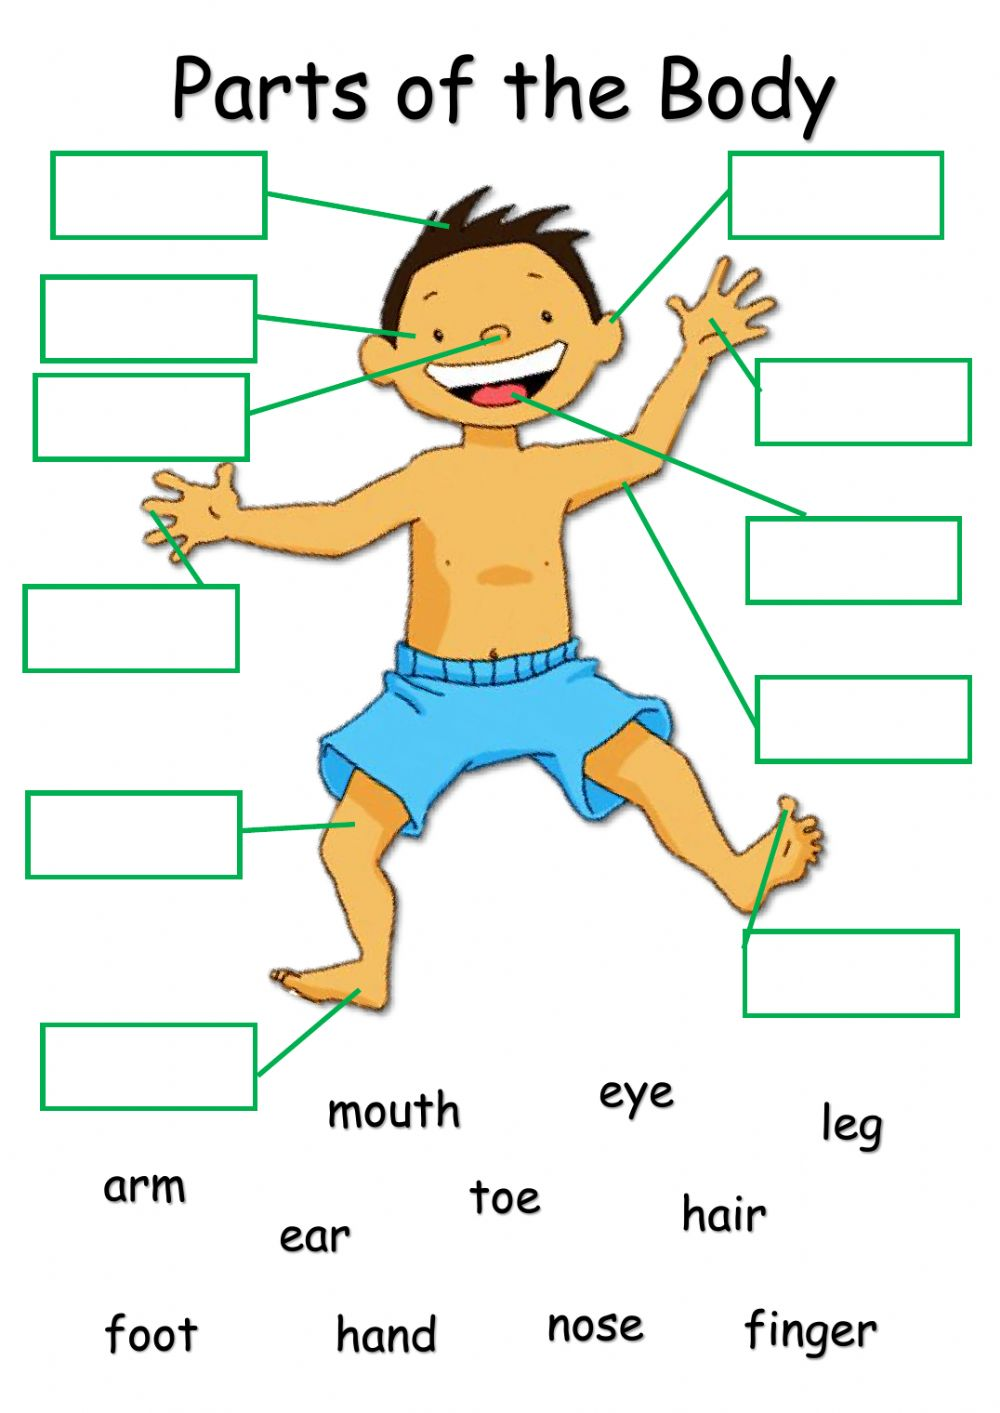 Body Parts online exercise for Grade 2